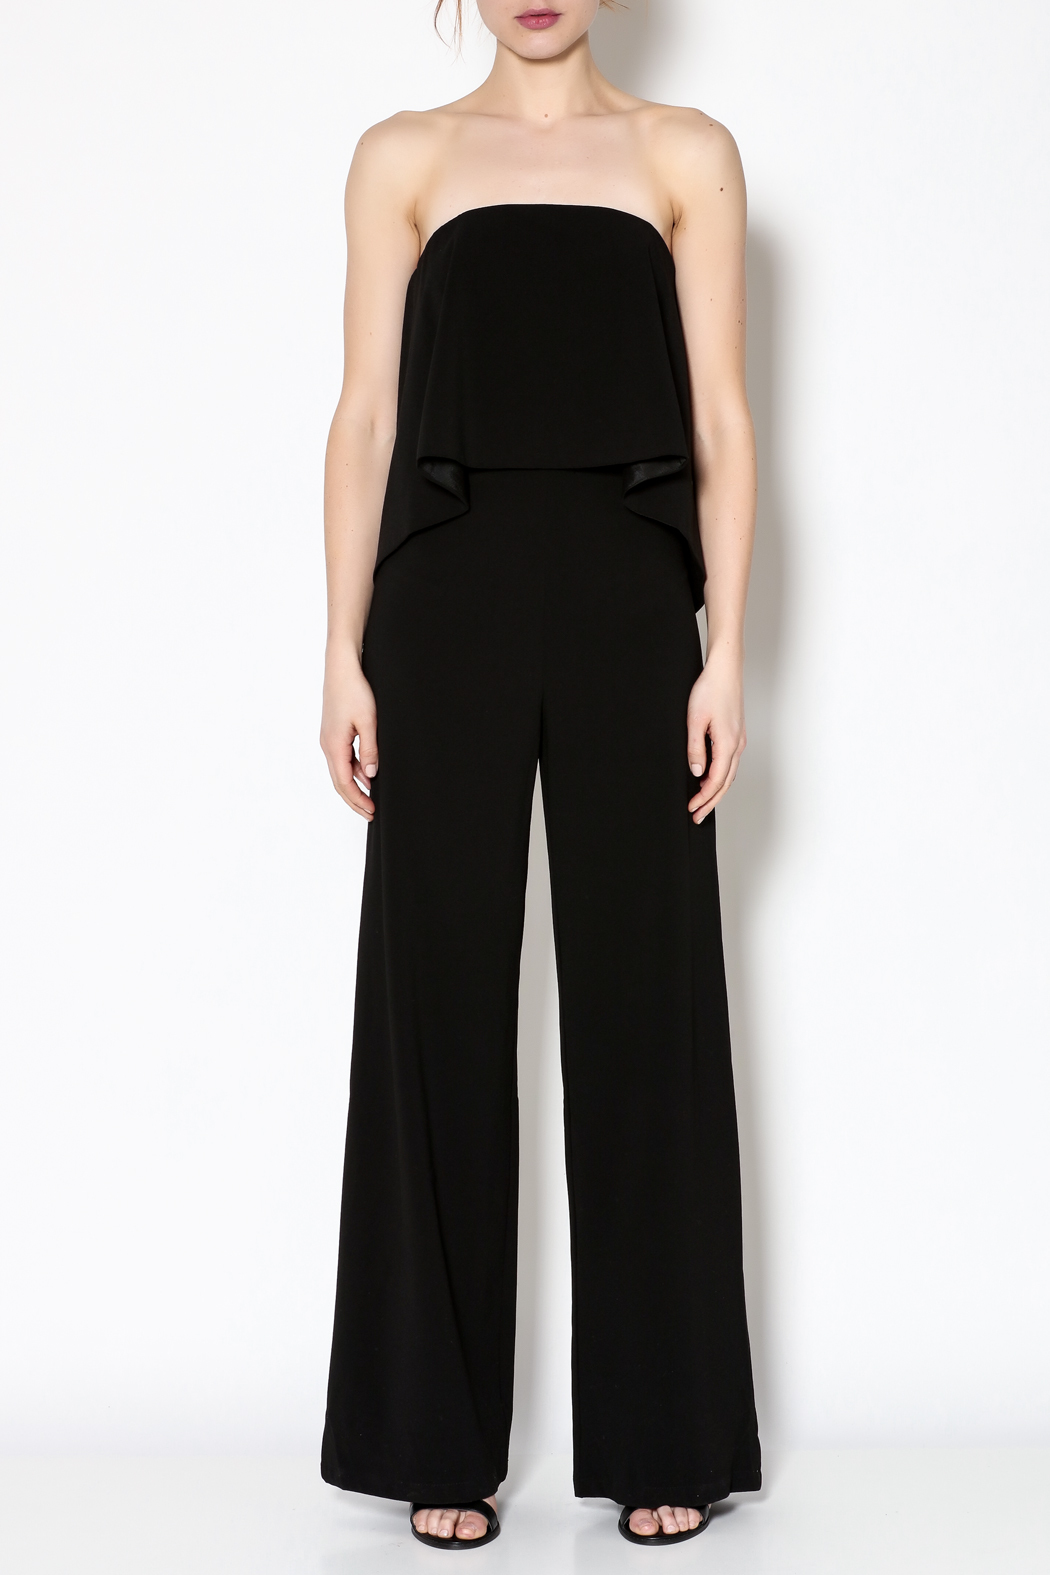 Do Be Black Strapless Jumpsuit Front Cropped Image